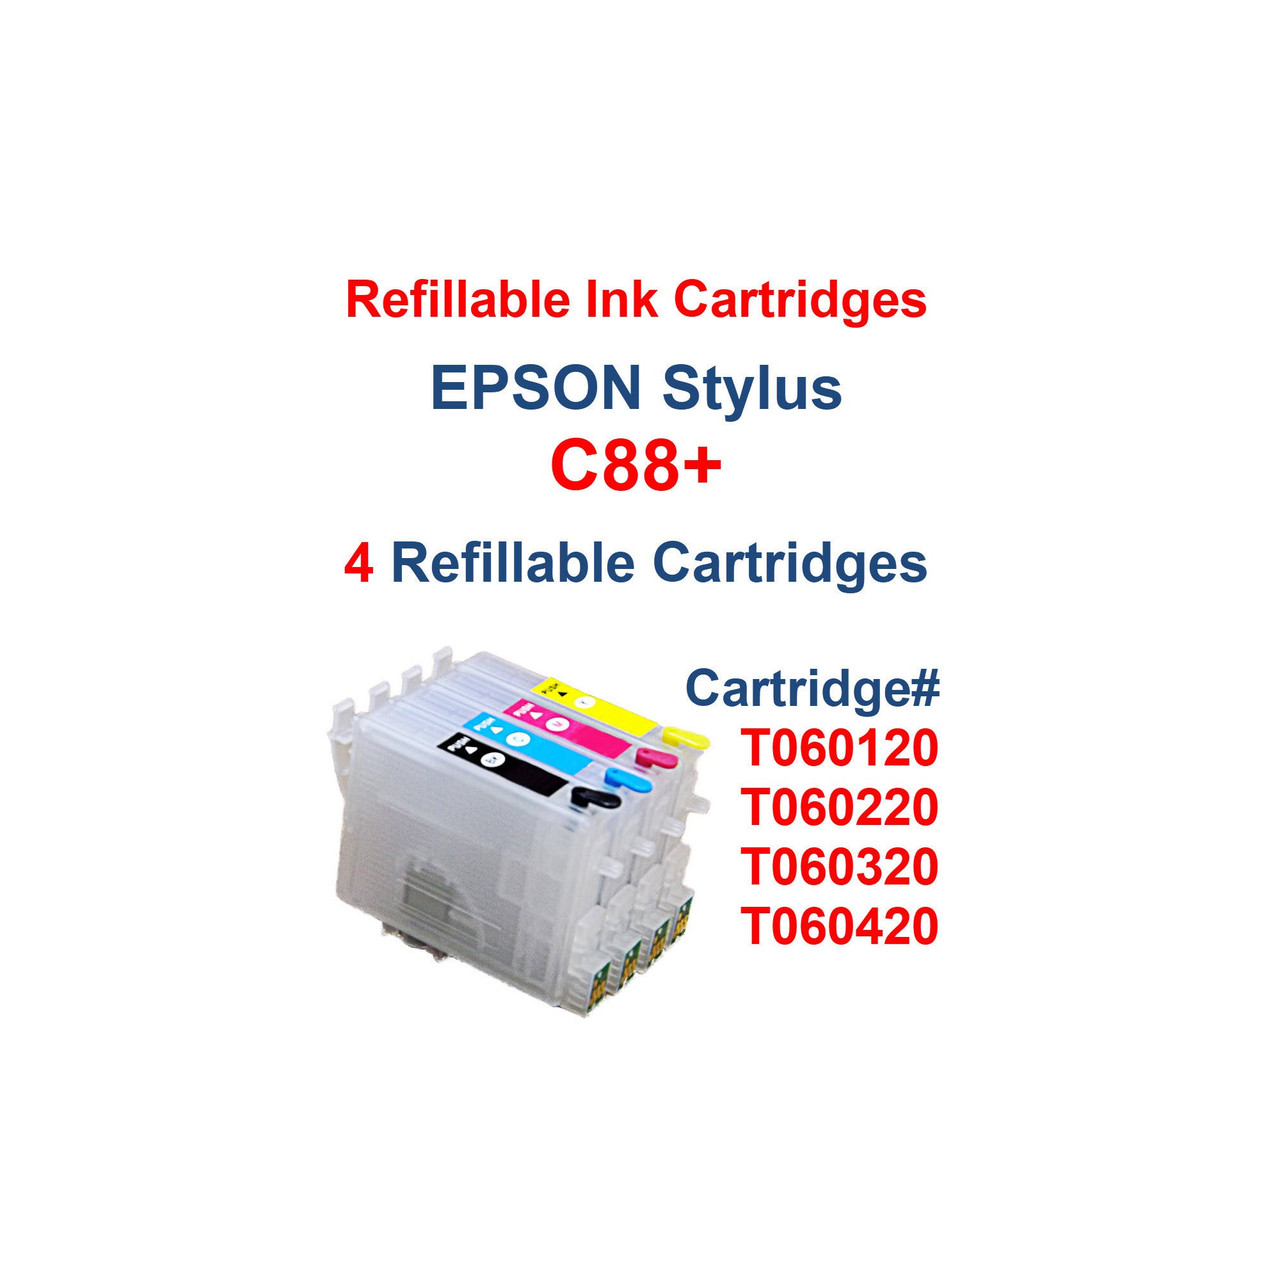 Refillable Ink Cartridges with auto reset chips for Epson Stylus C88 printer